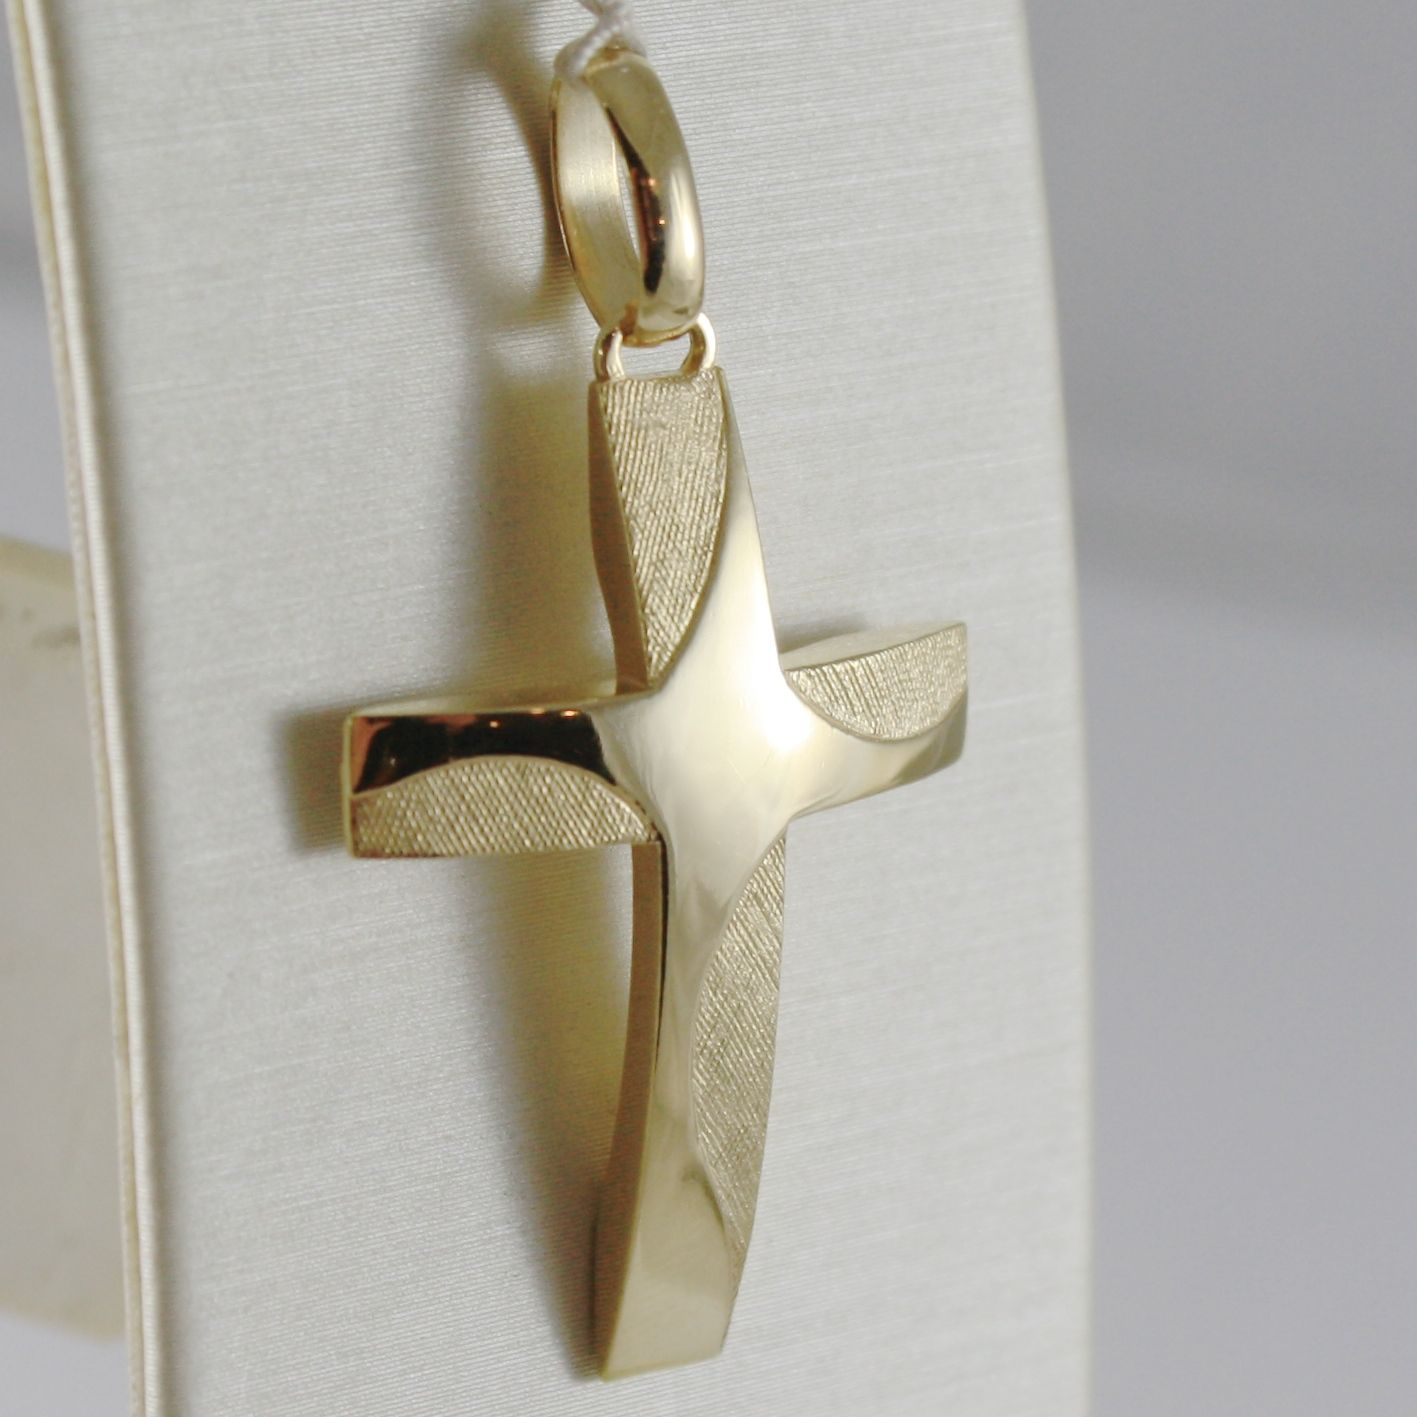 18K YELLOW GOLD CROSS SATIN SQUARED FINELY WORKED, 1.54 INCHES MADE IN ITALY